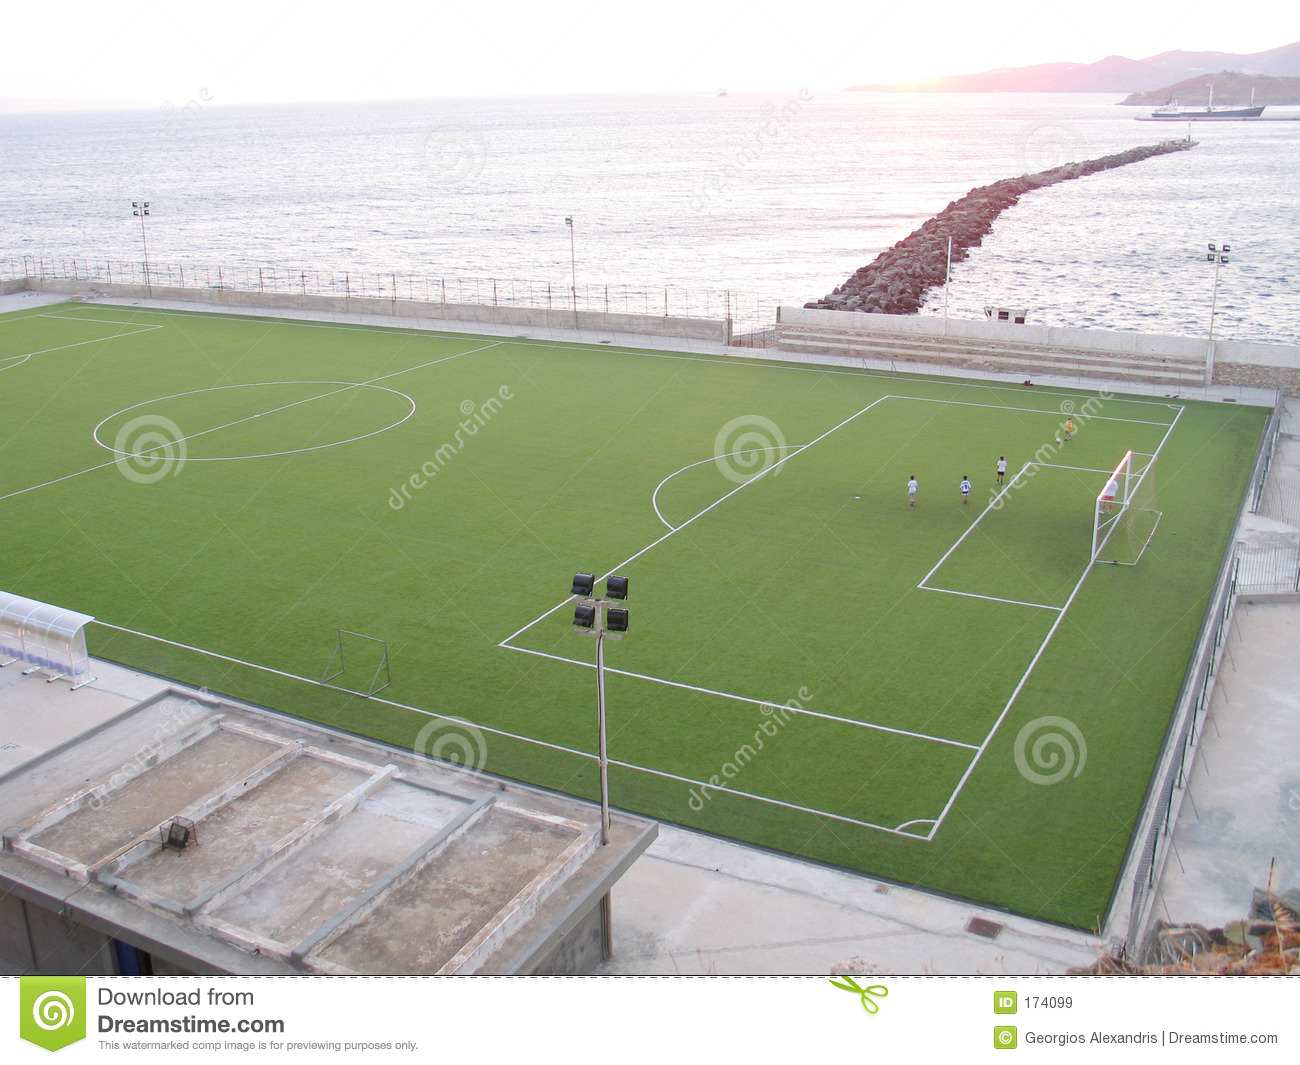 Playing Soccer by the Sea